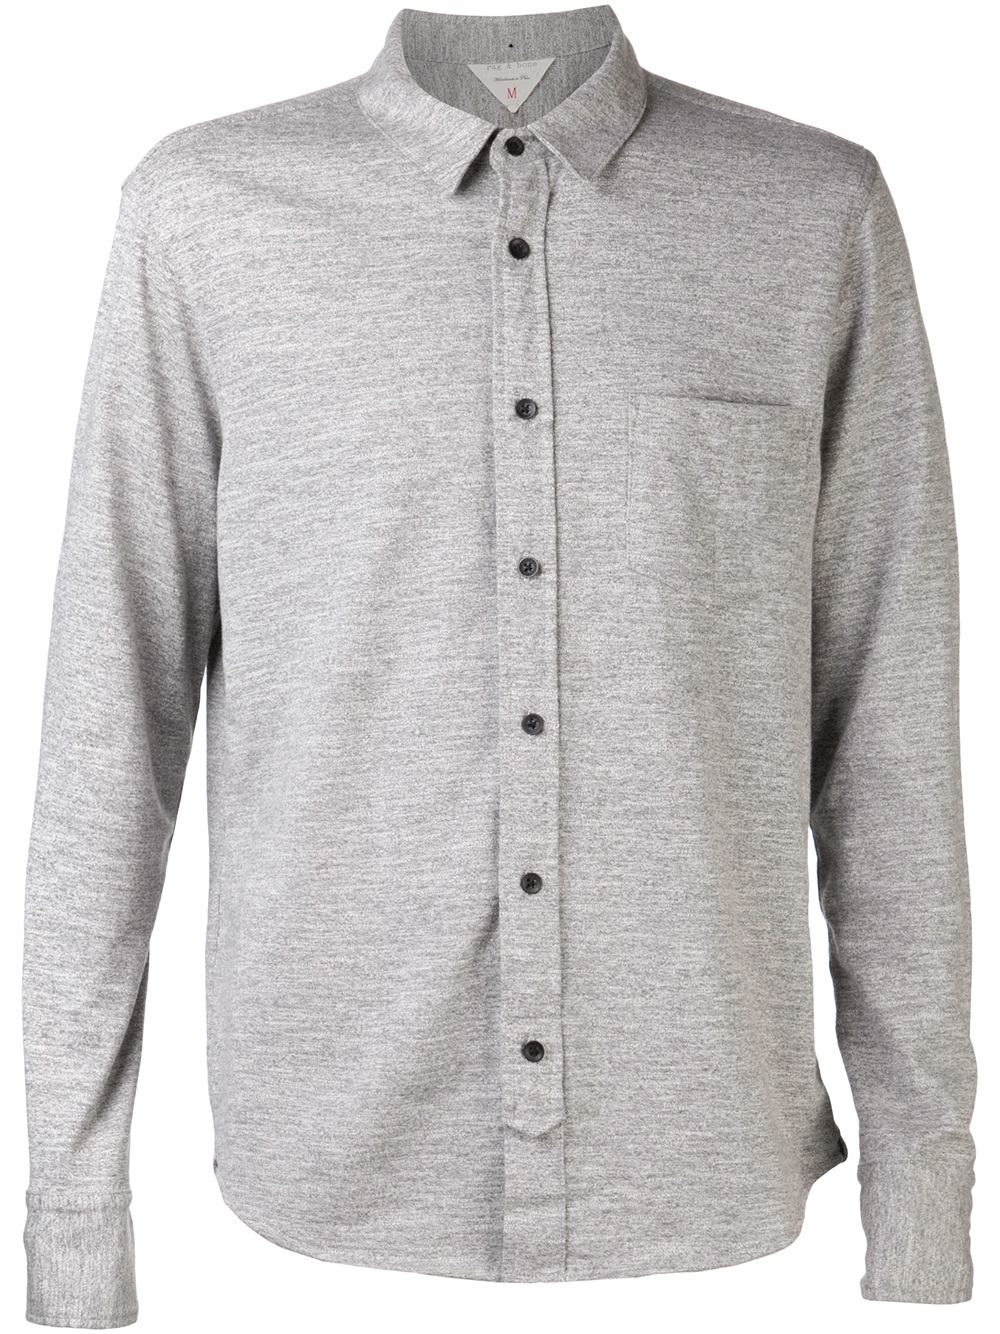 Rag & bone Button Up Shirt in Gray for Men | Lyst